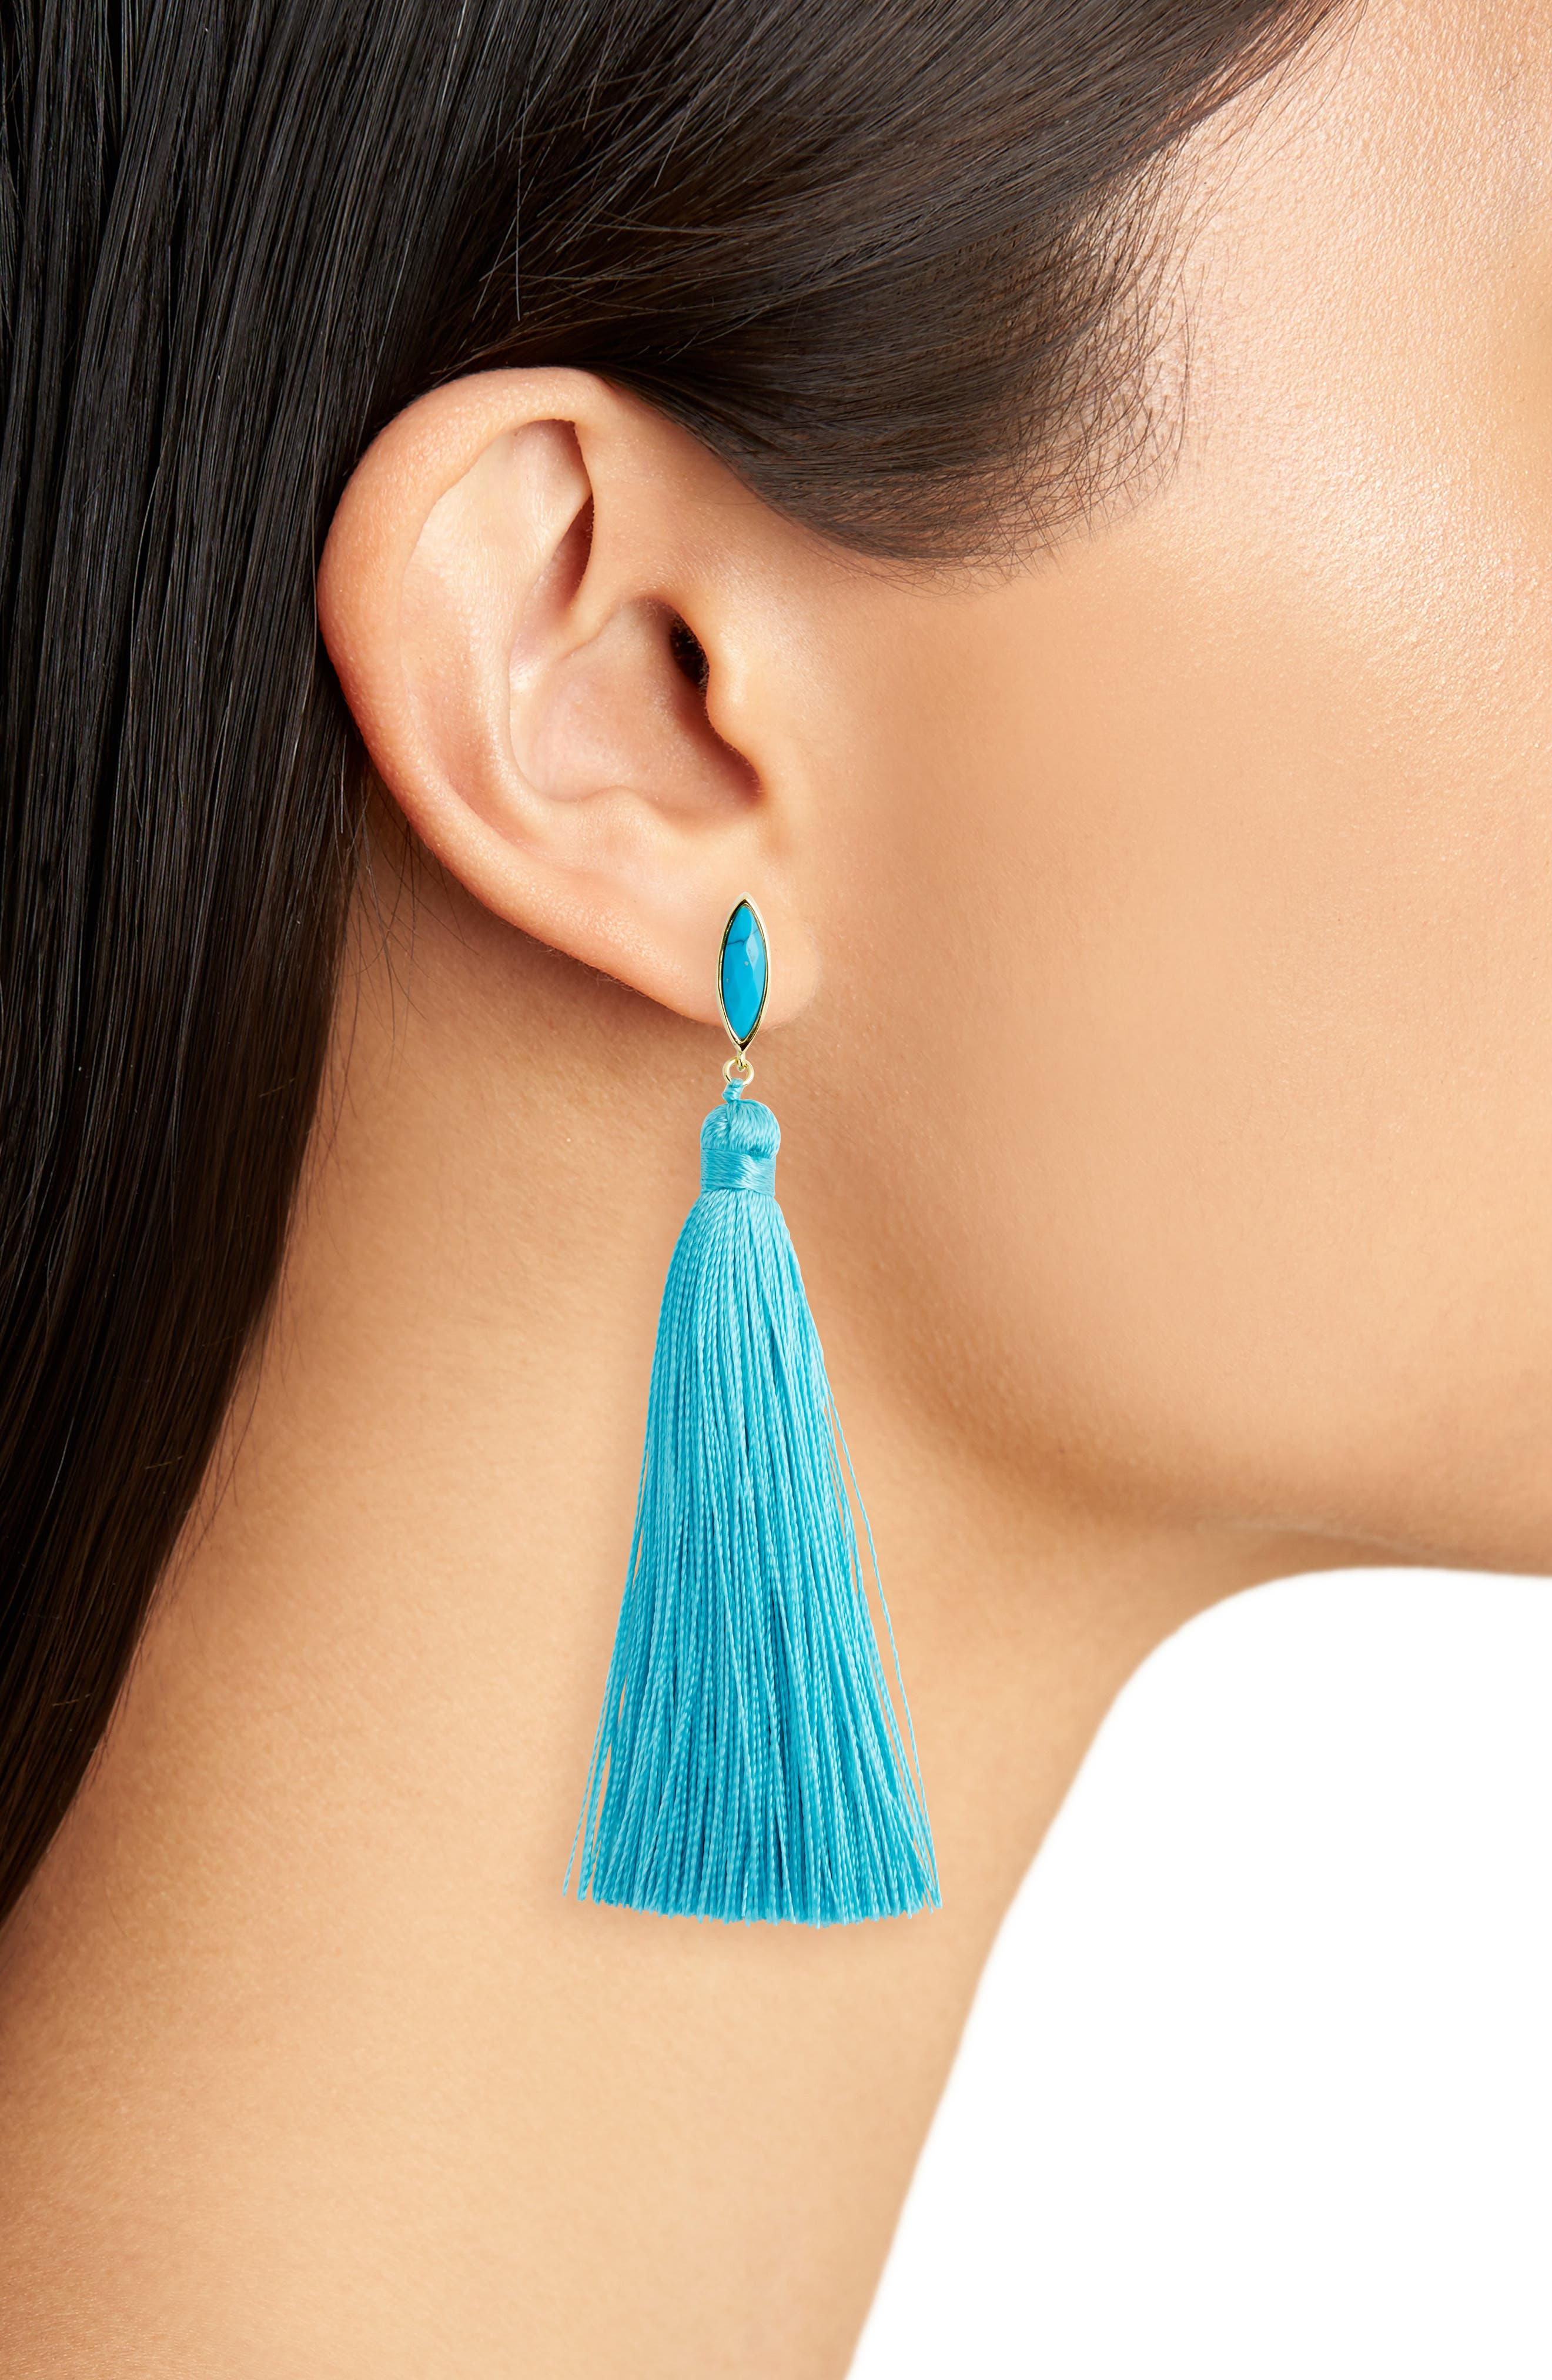 Palisades Tassel Earrings,                             Alternate thumbnail 2, color,                             Turquoise/ Gold